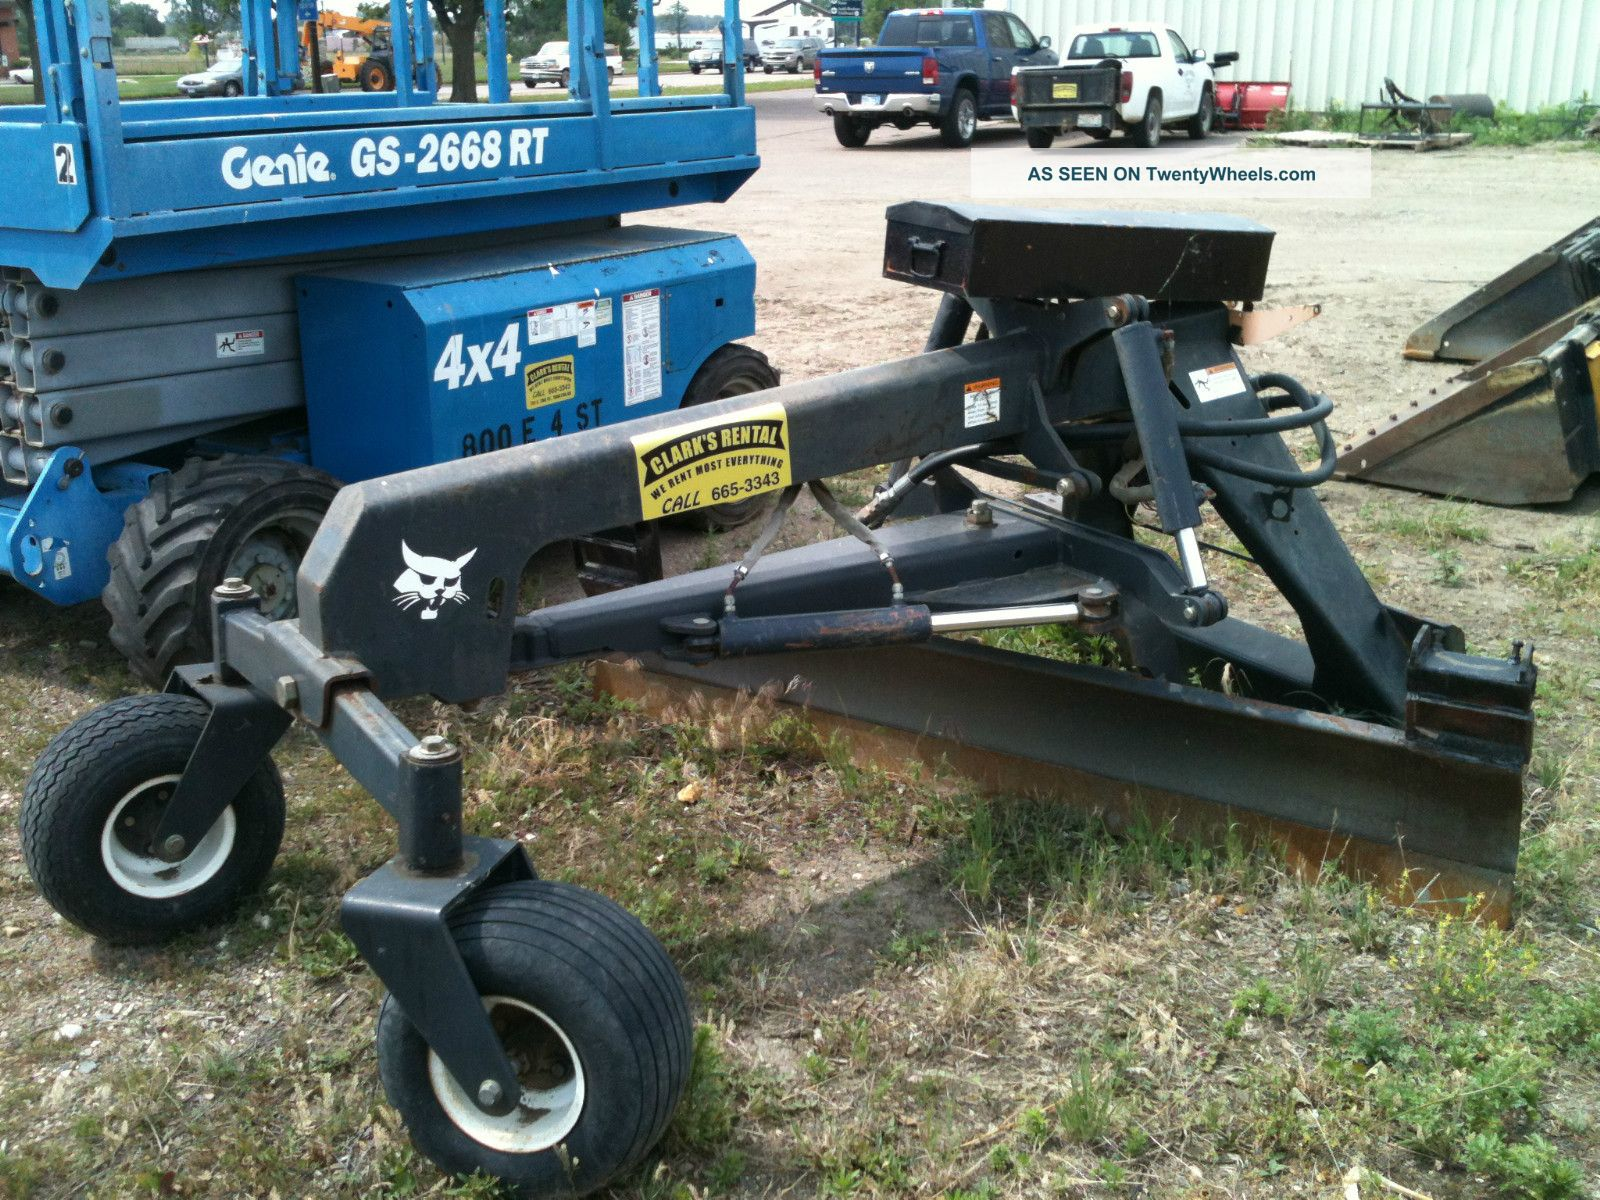 7 Foot Skidloader Grader Attachment Fits Bobcat And Others With Remote Control Skid Steer Loaders photo